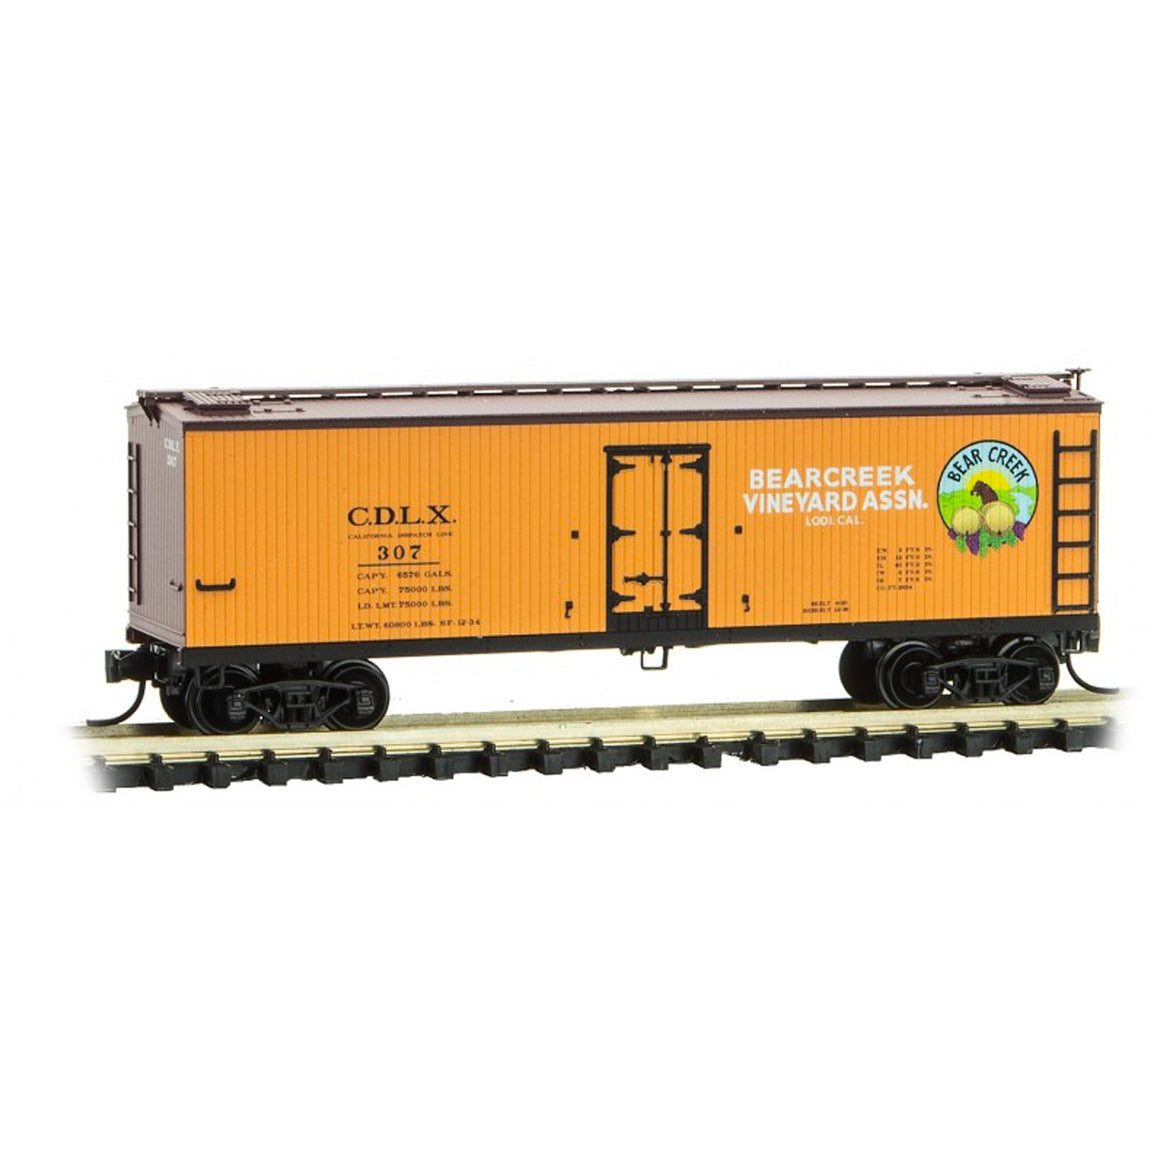 N Scale: 40' Double Sheathed Wood Reefer - Bear Creek Vinyard